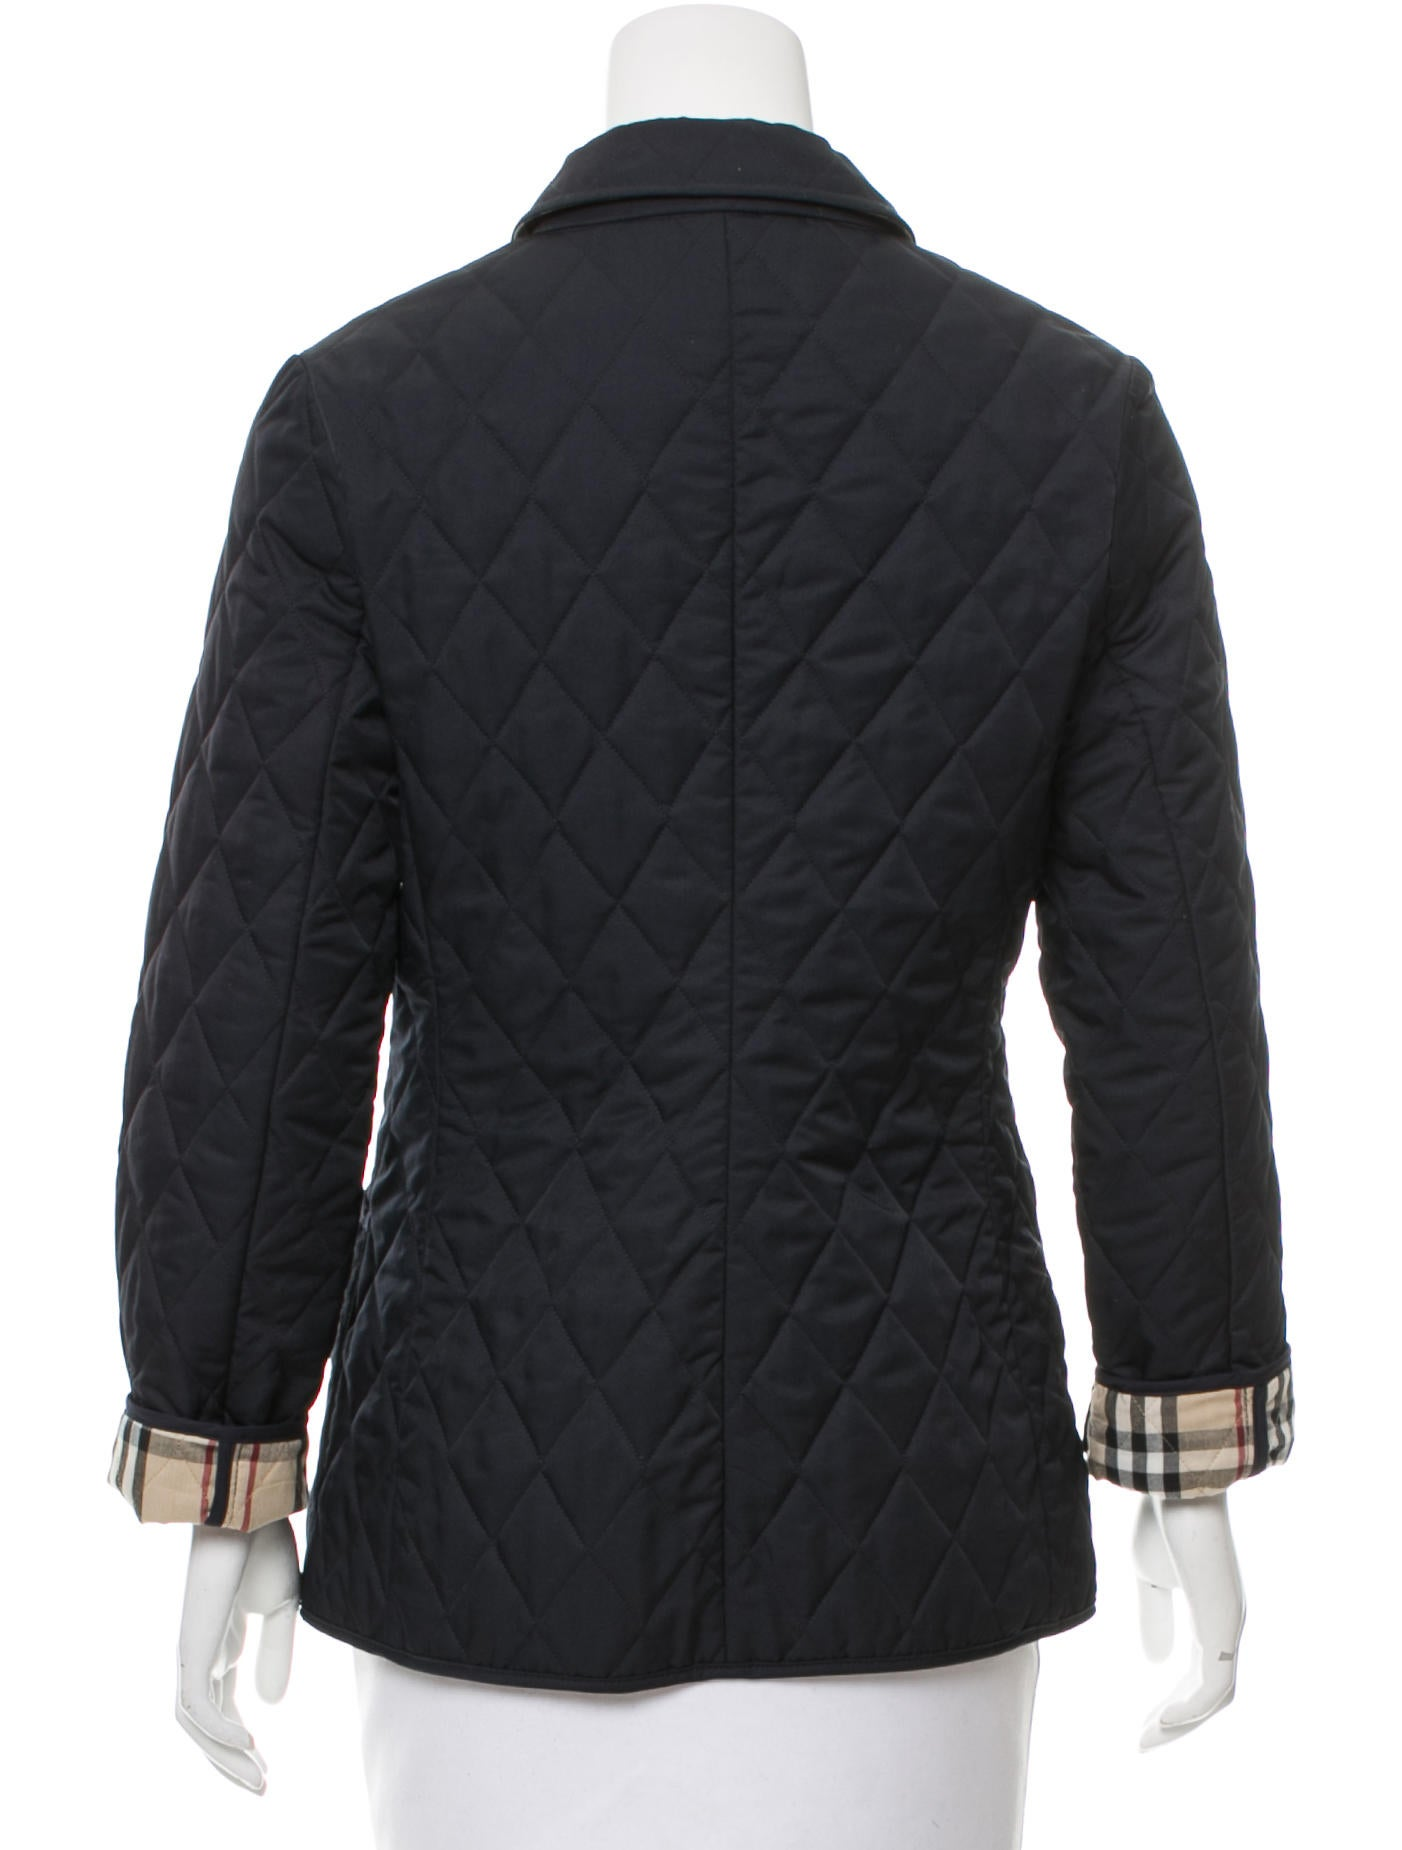 Burberry Lightweight Quilted Jacket Clothing Bur74669